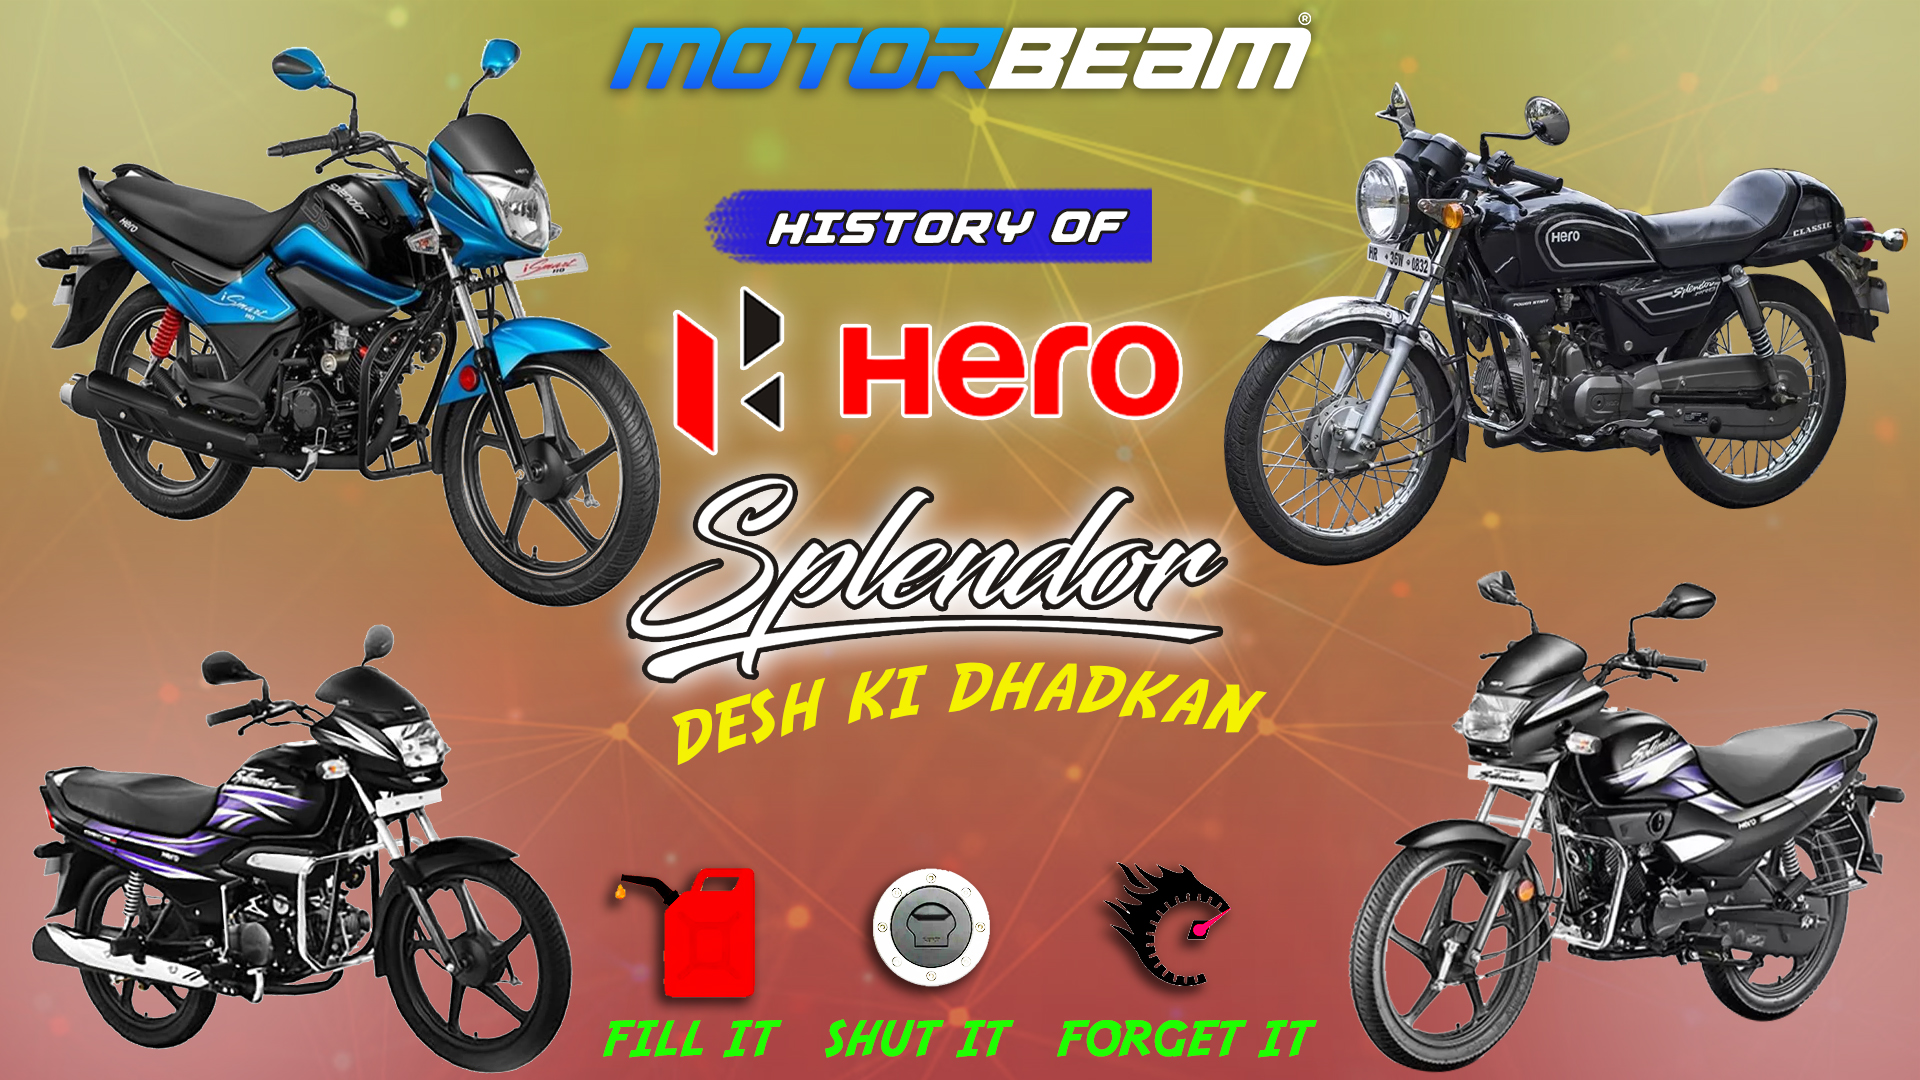 History Of Hero Splendor Video